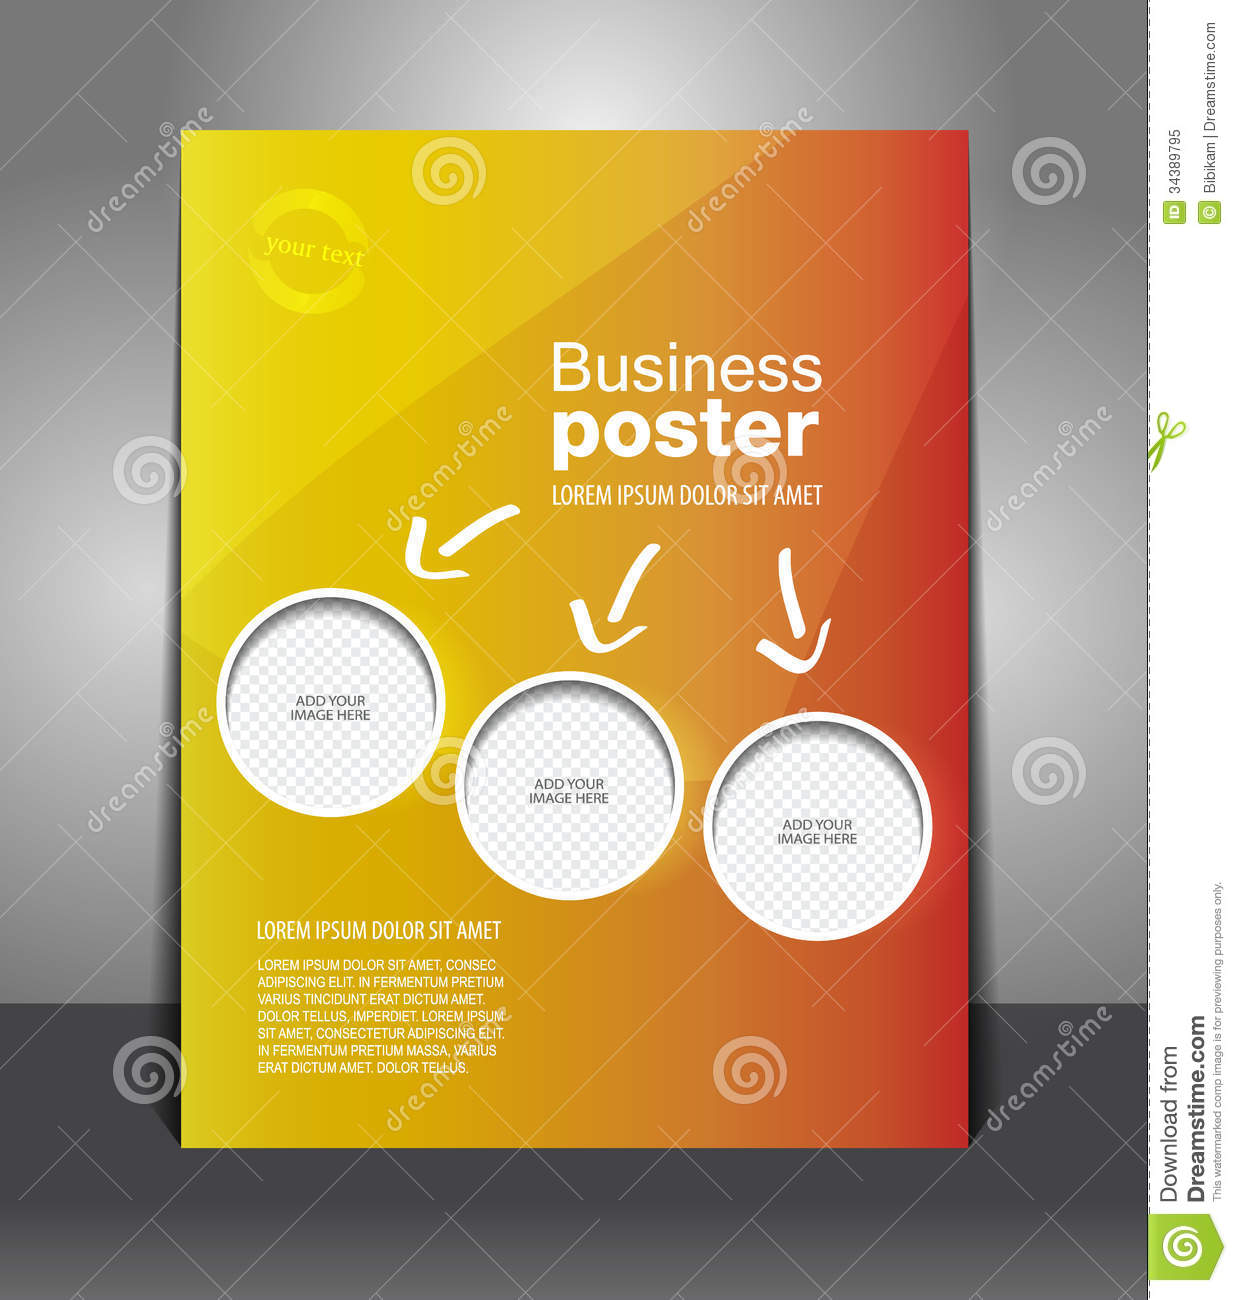 Poster design vector download -  Design Flyer Image Magazine Poster Download